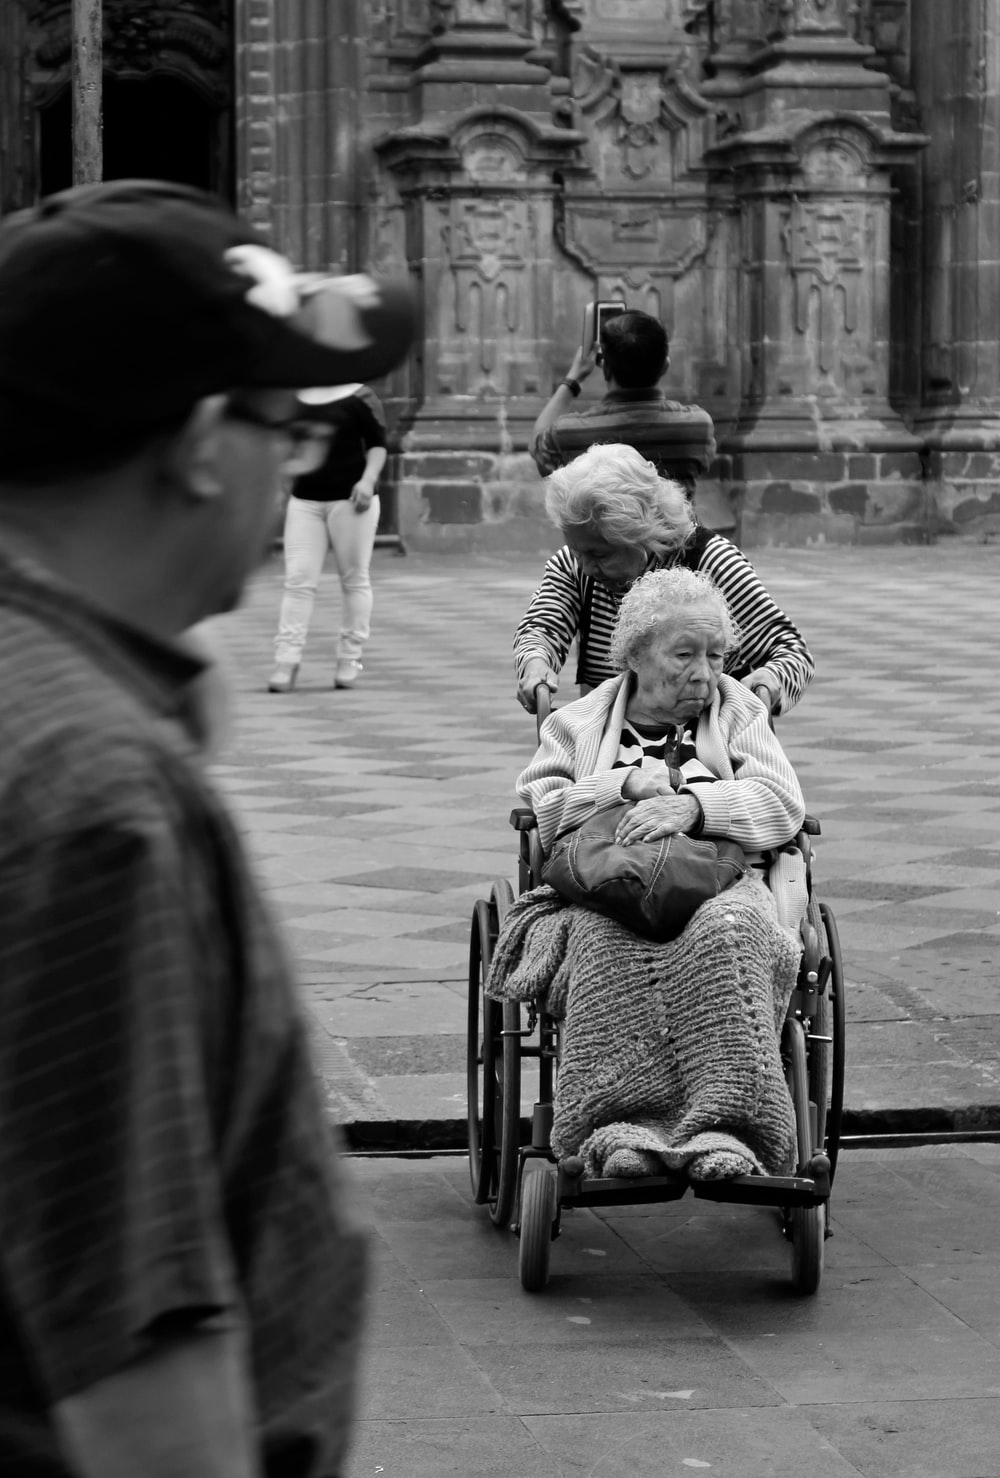 grayscale photography unknown person riding on wheelchair outdoors